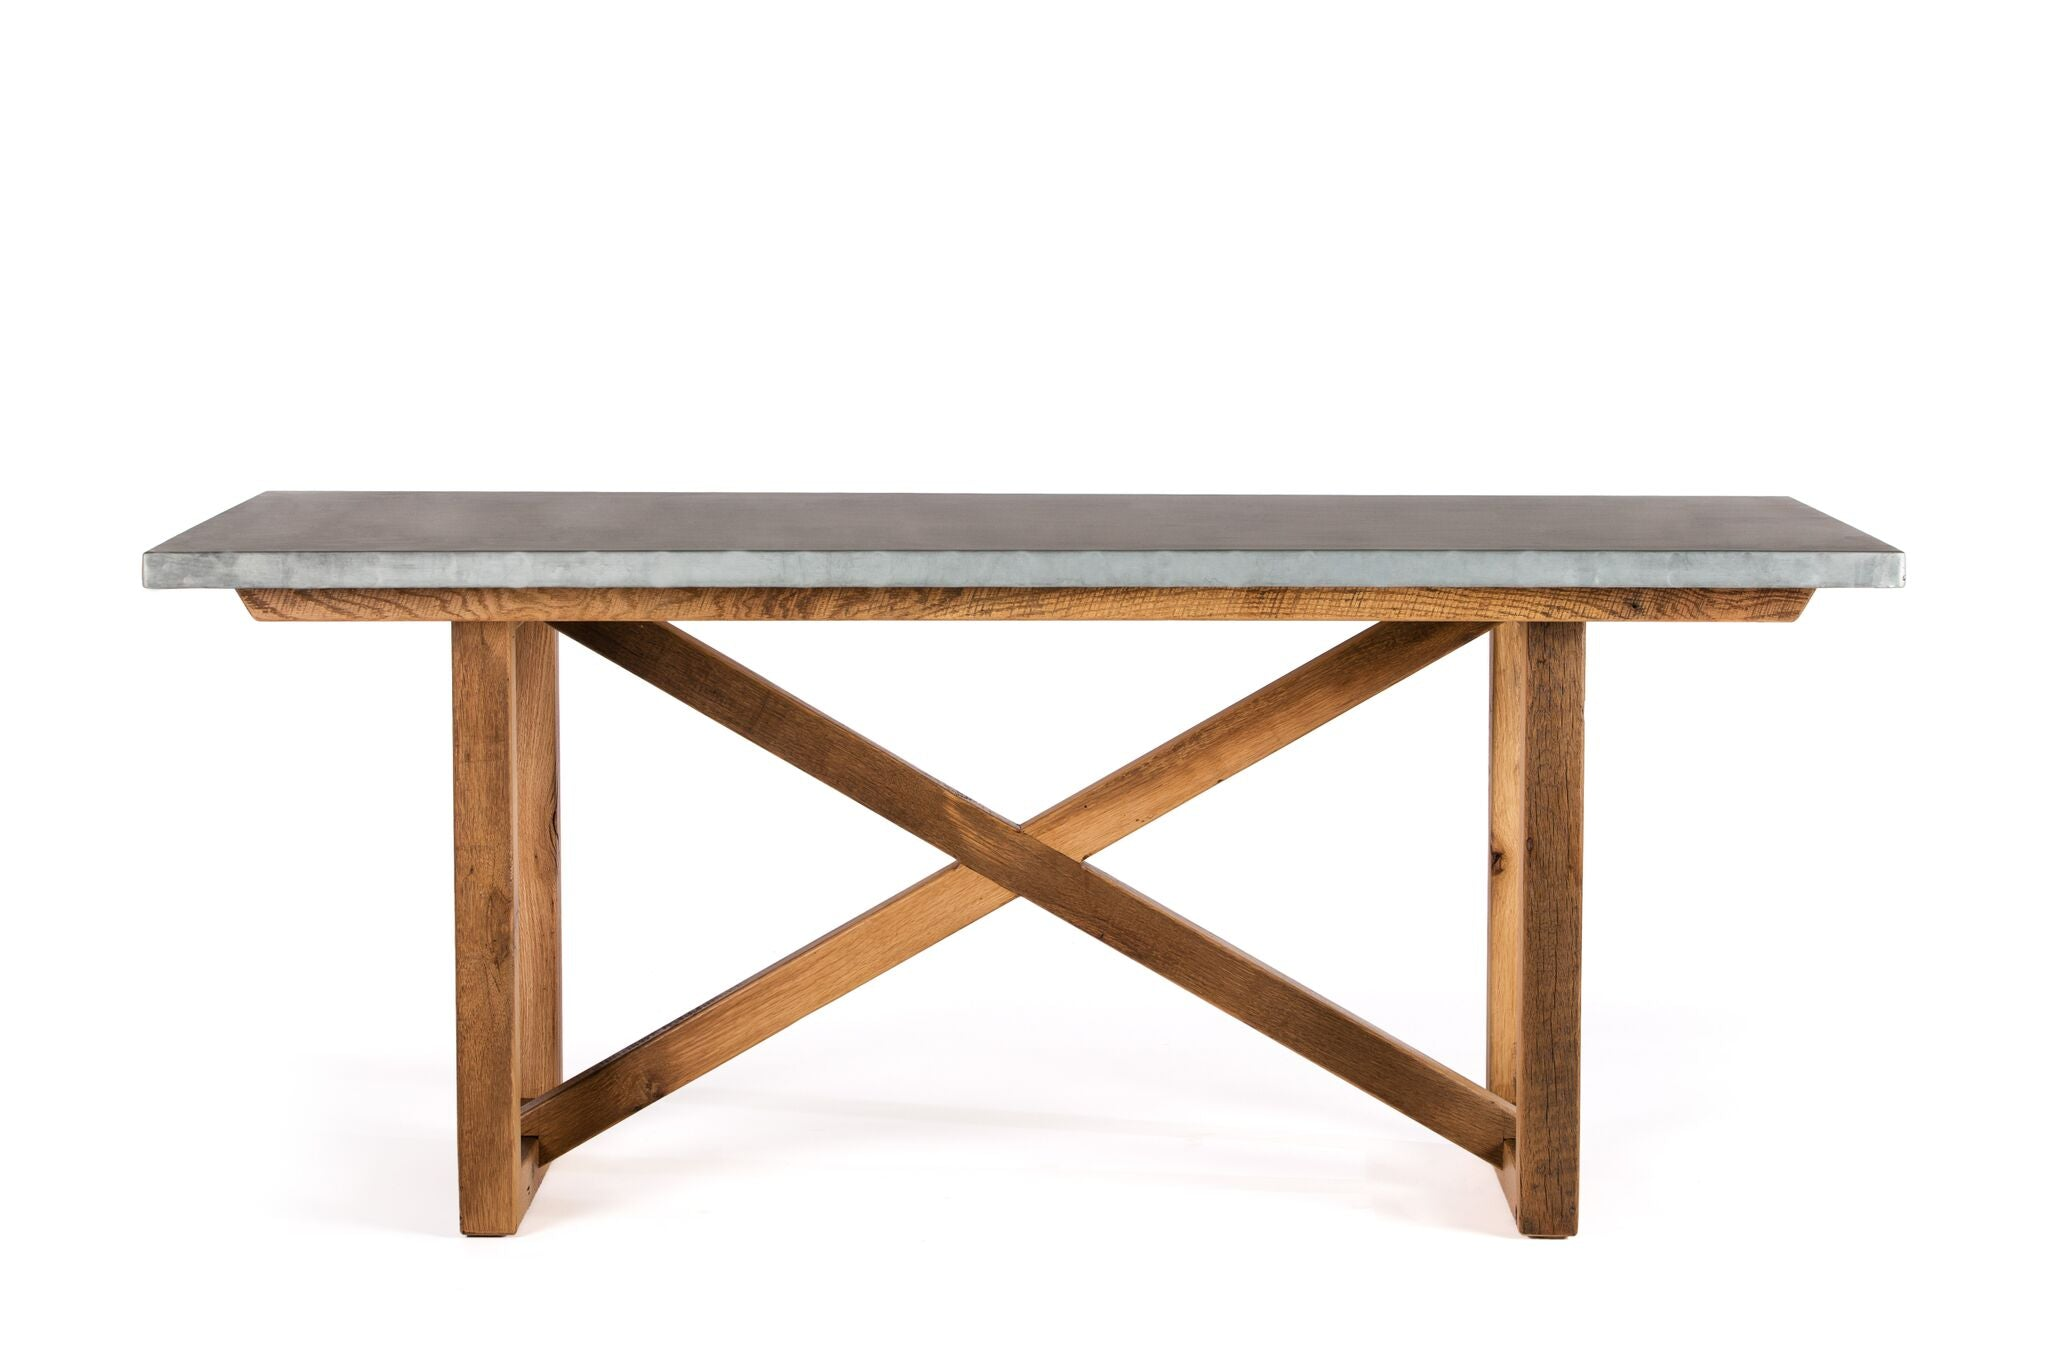 Zinc Rectangular Table | Astor Table | CLASSIC | Natural Ash | CUSTOM SIZE L 60 W 37 H 30 |